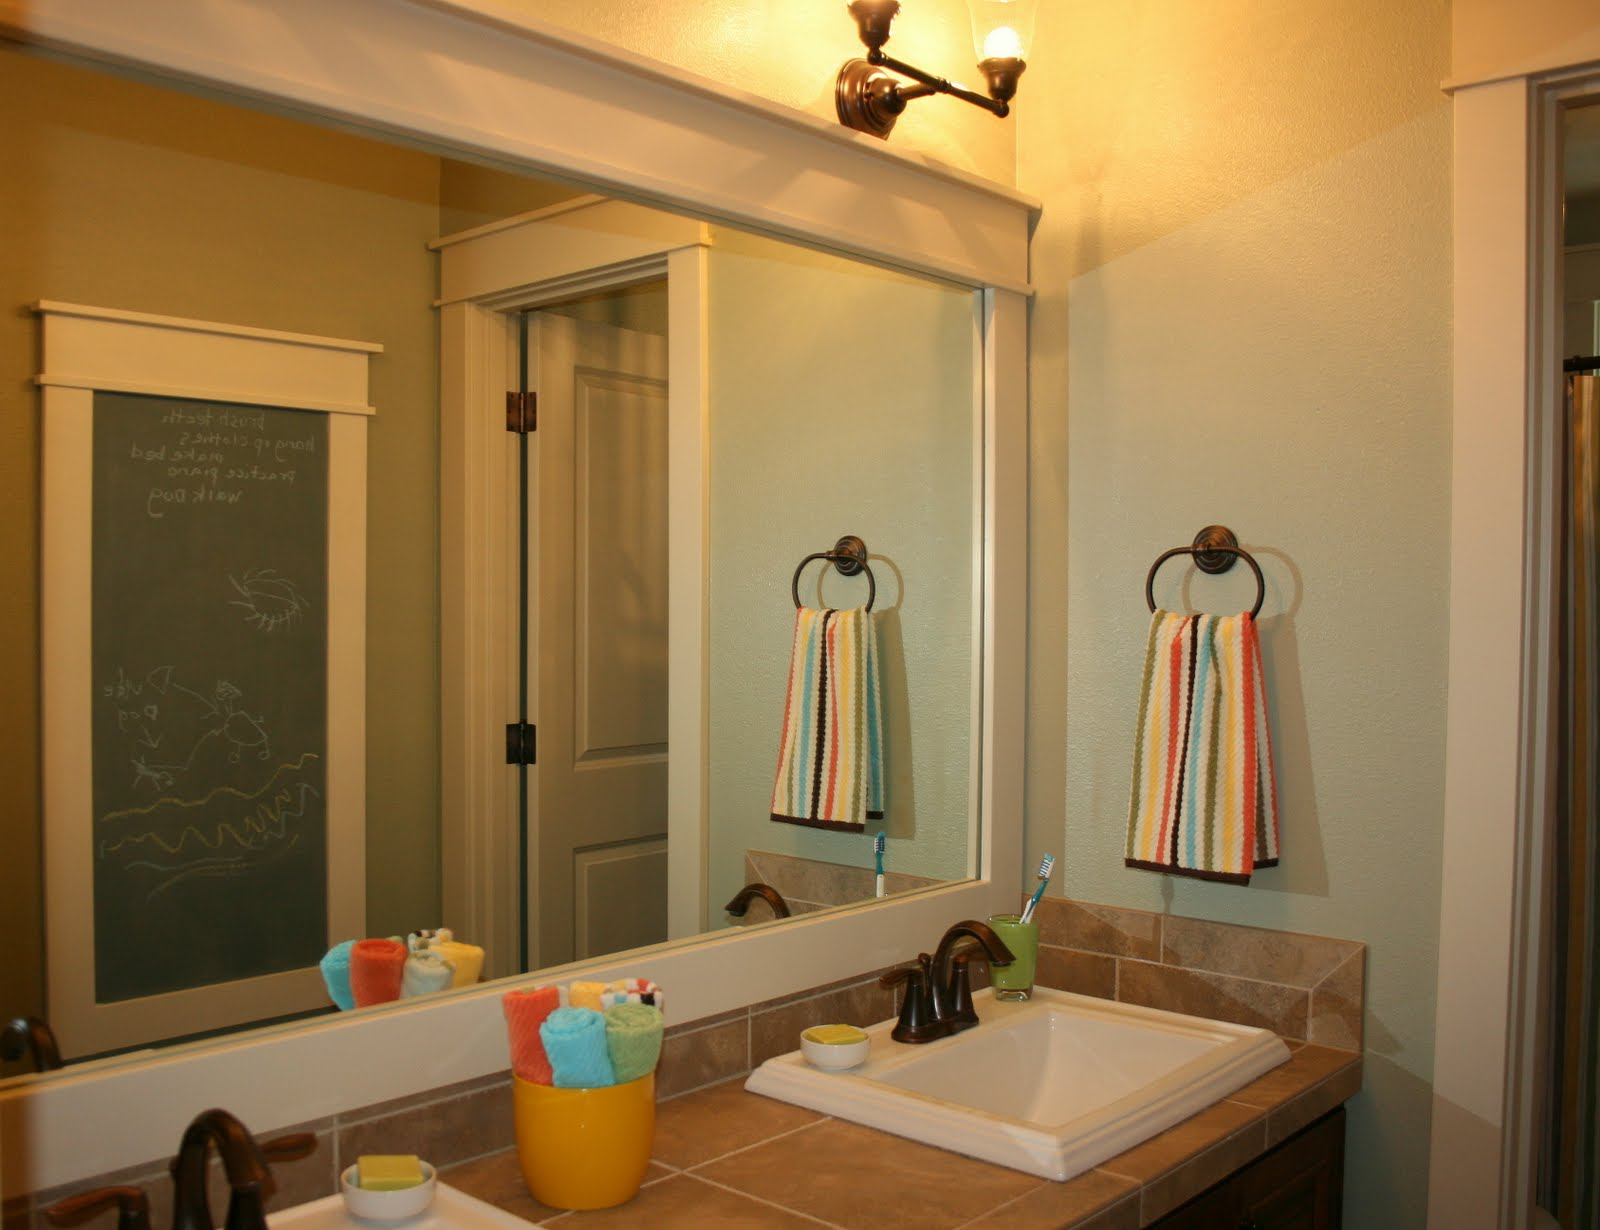 inspiring bathroom with lowes bathroom ligting plus mirror and towel hanger plus sink ideas